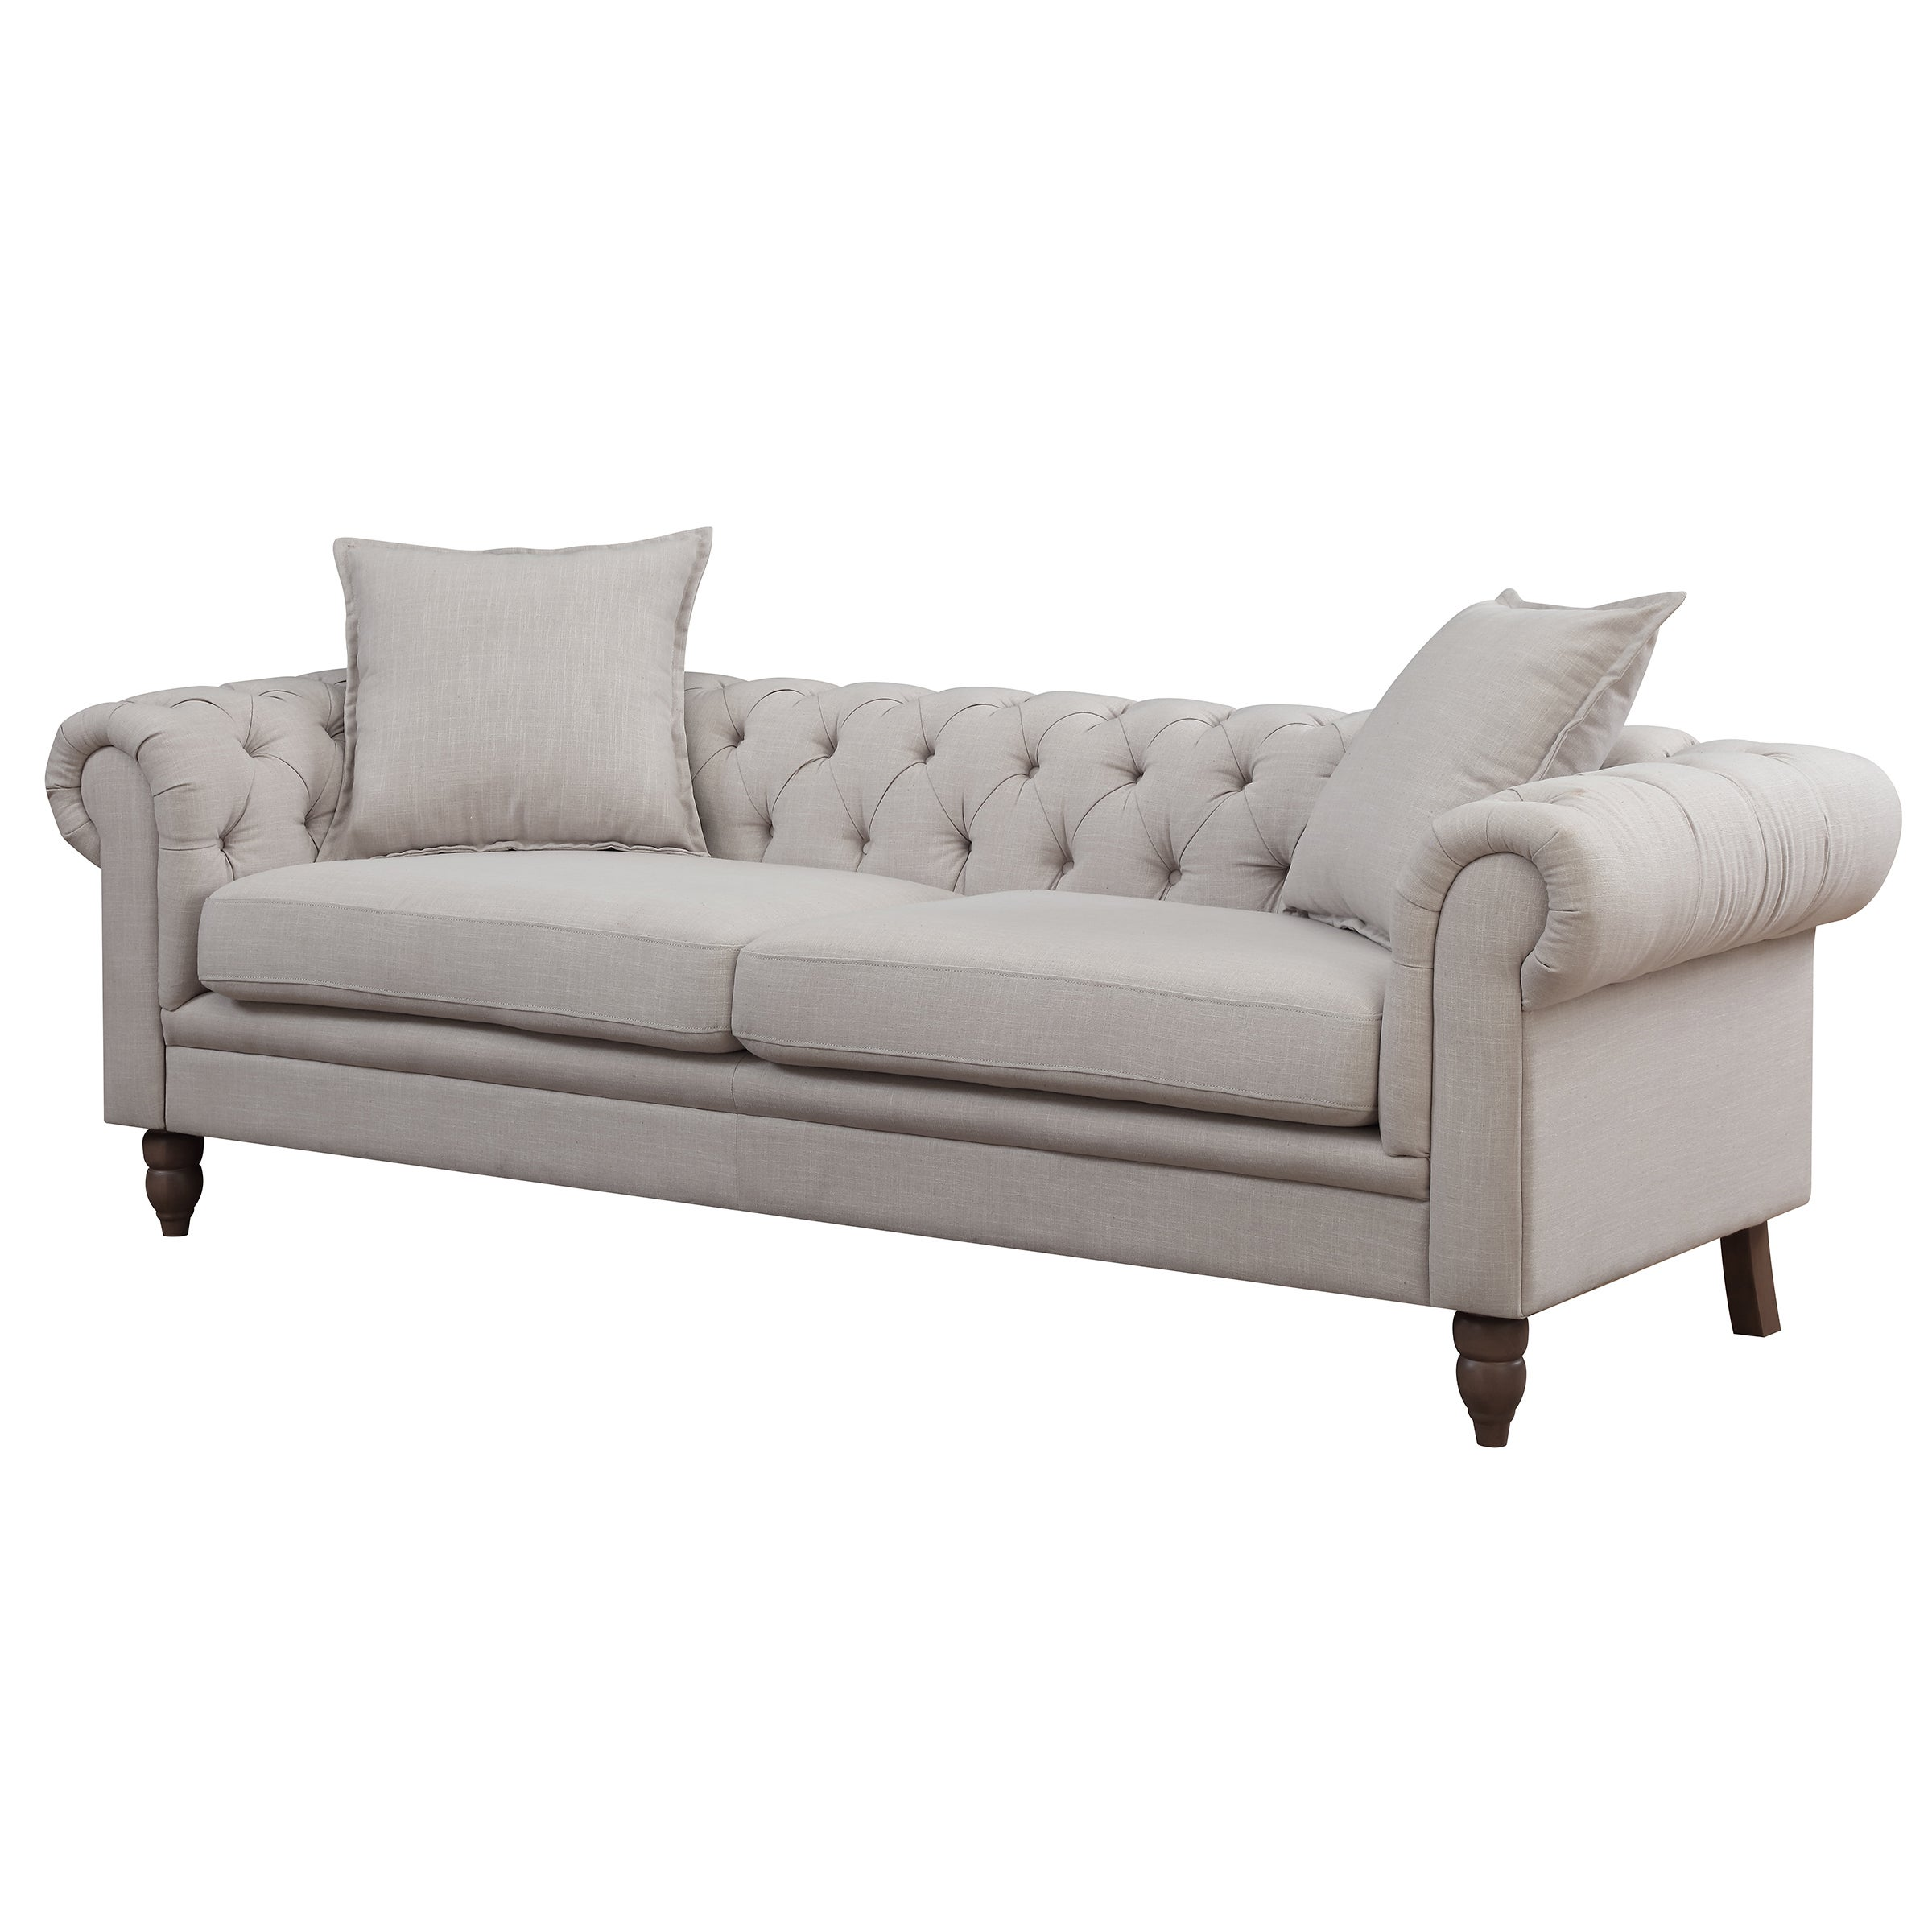 Charmant Shop Christies Home Living Juliet Small Chesterfield Tufted Beige Linen  Fabric Sofa   On Sale   Free Shipping Today   Overstock.com   22801441